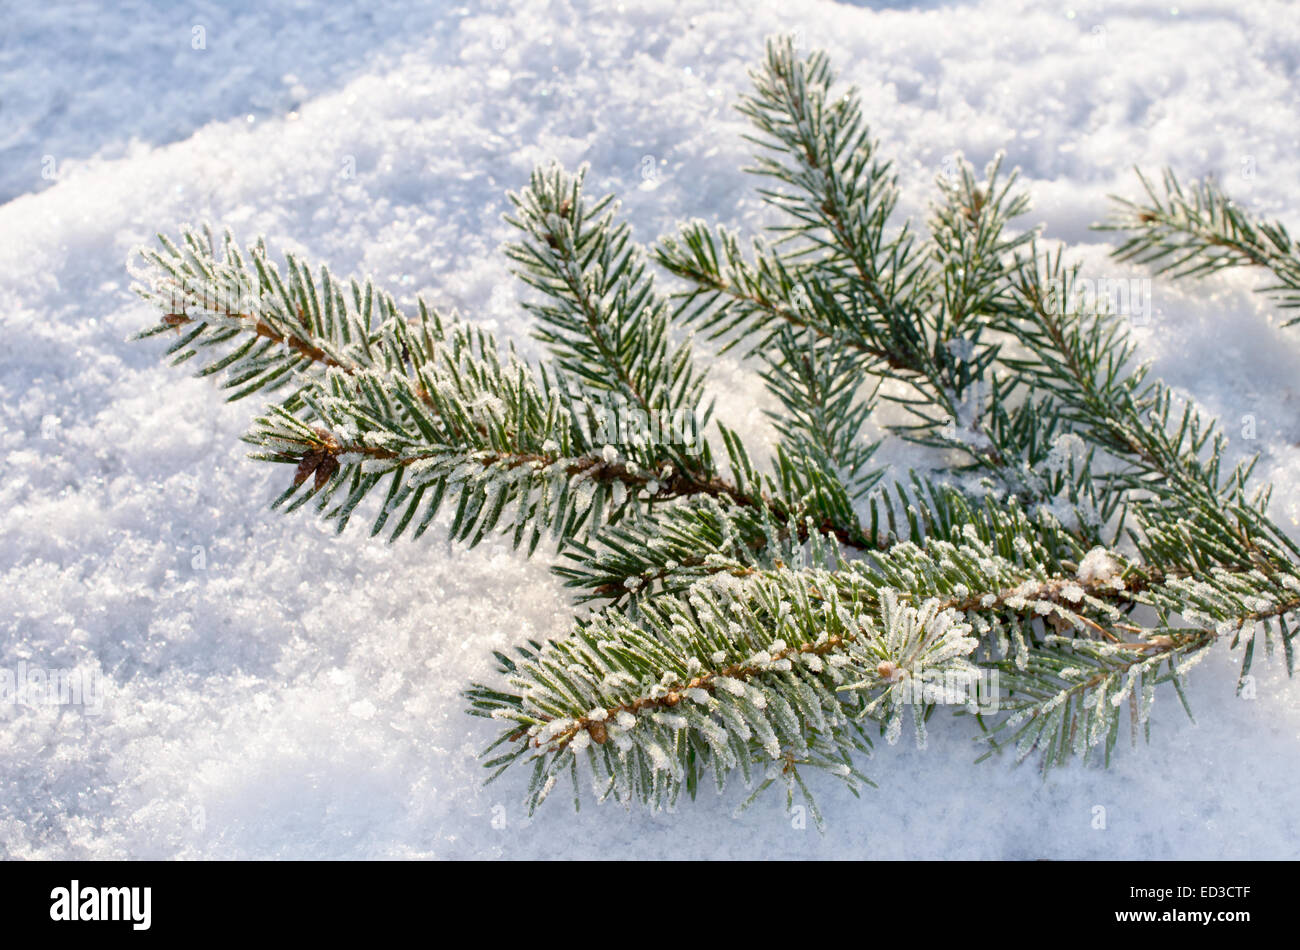 frozen spruce branches - Stock Image